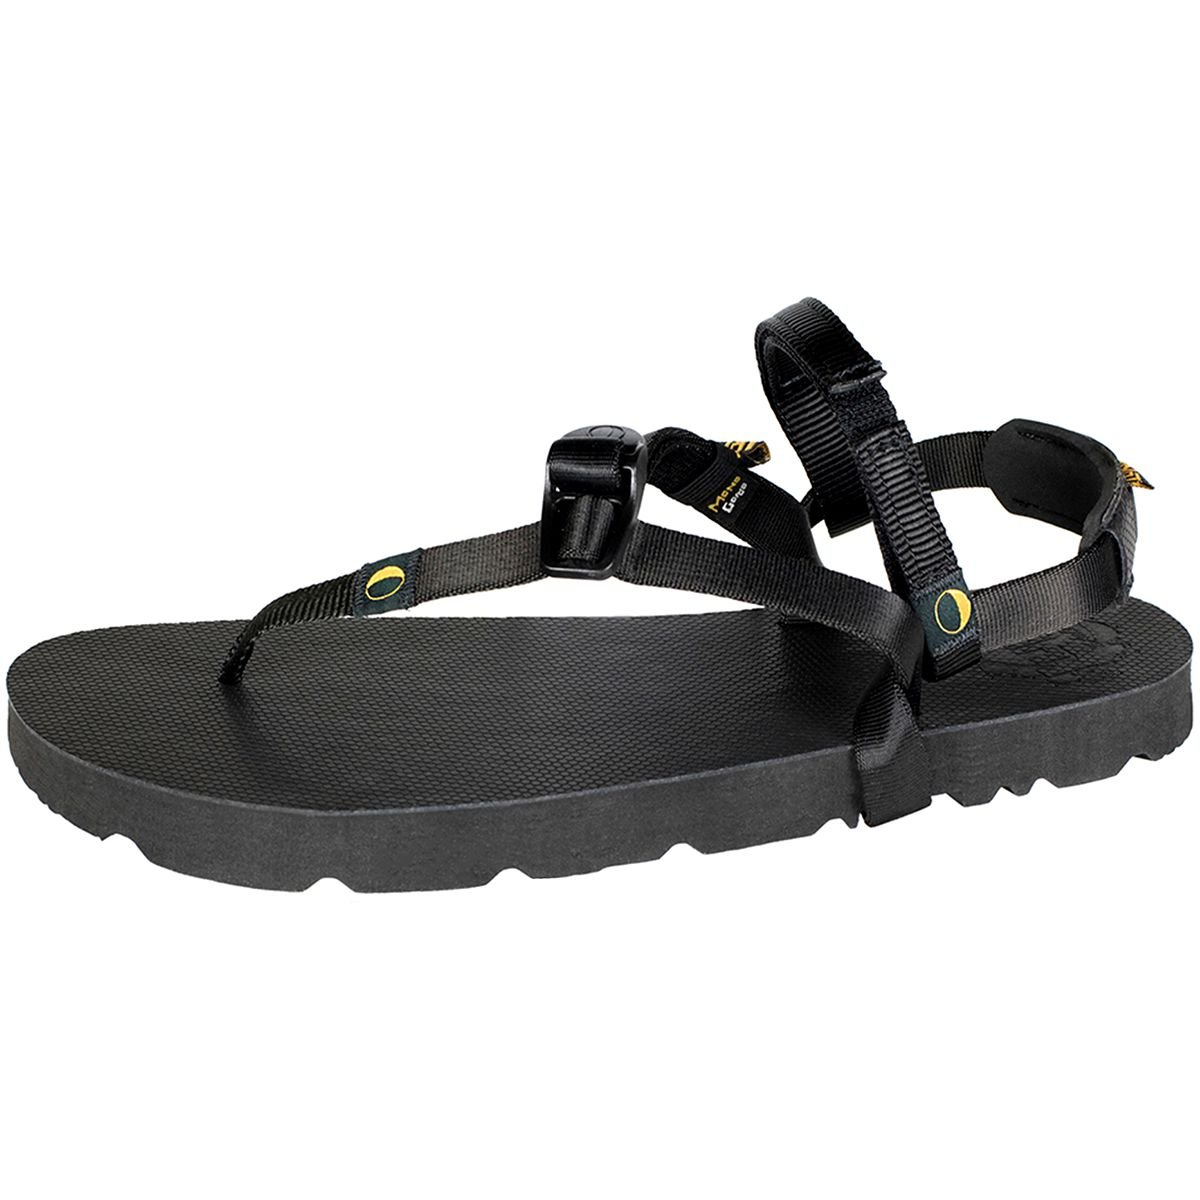 Luna Sandals Mono Gordo 2.0 Sandal - Women's One Color, 9.5